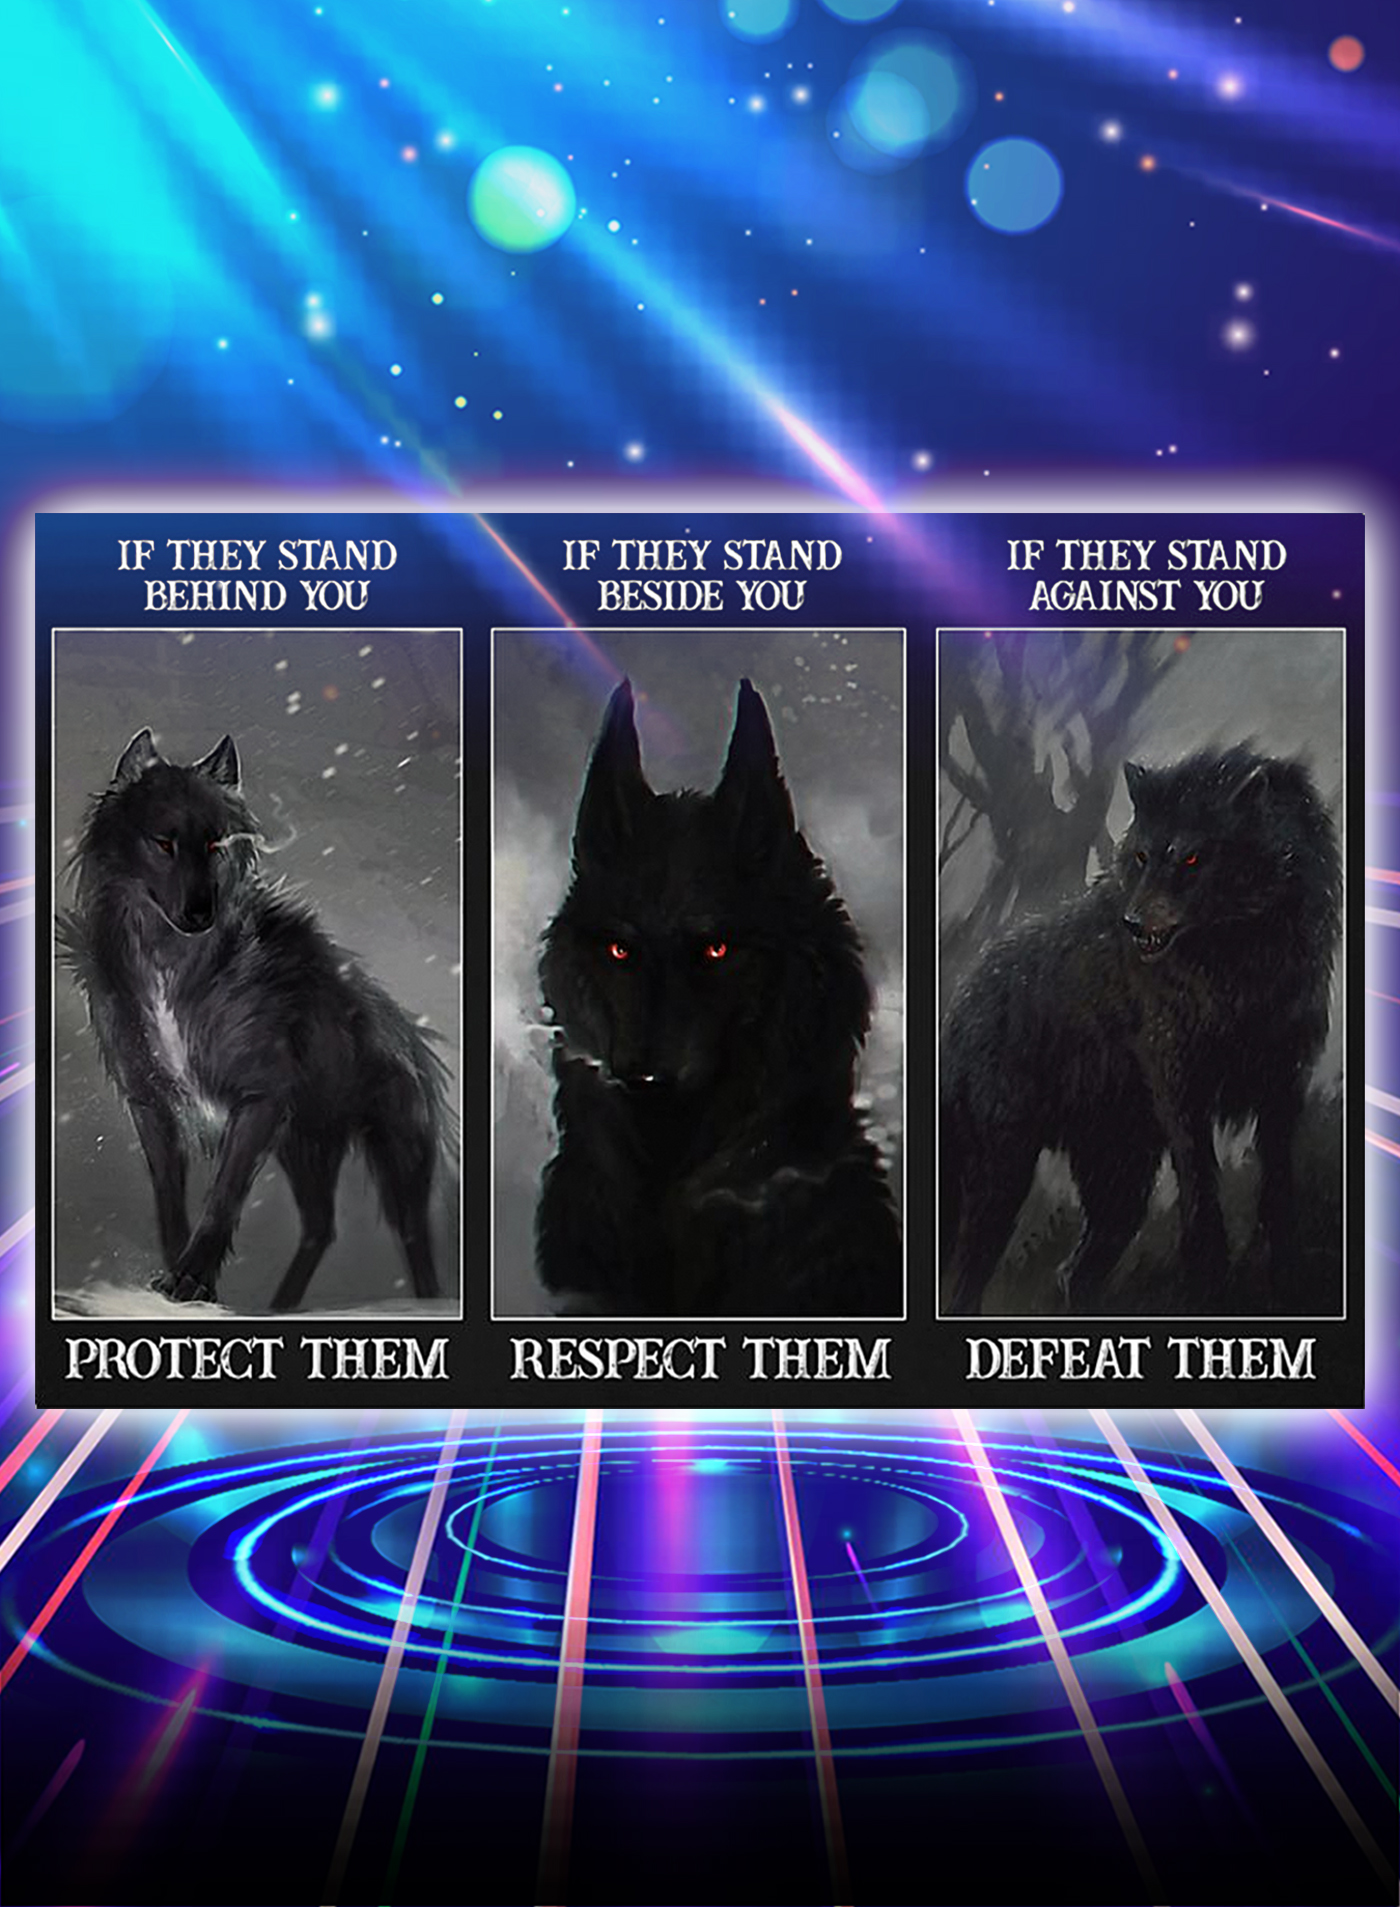 Wolf if they stand behind you protect them poster - A1